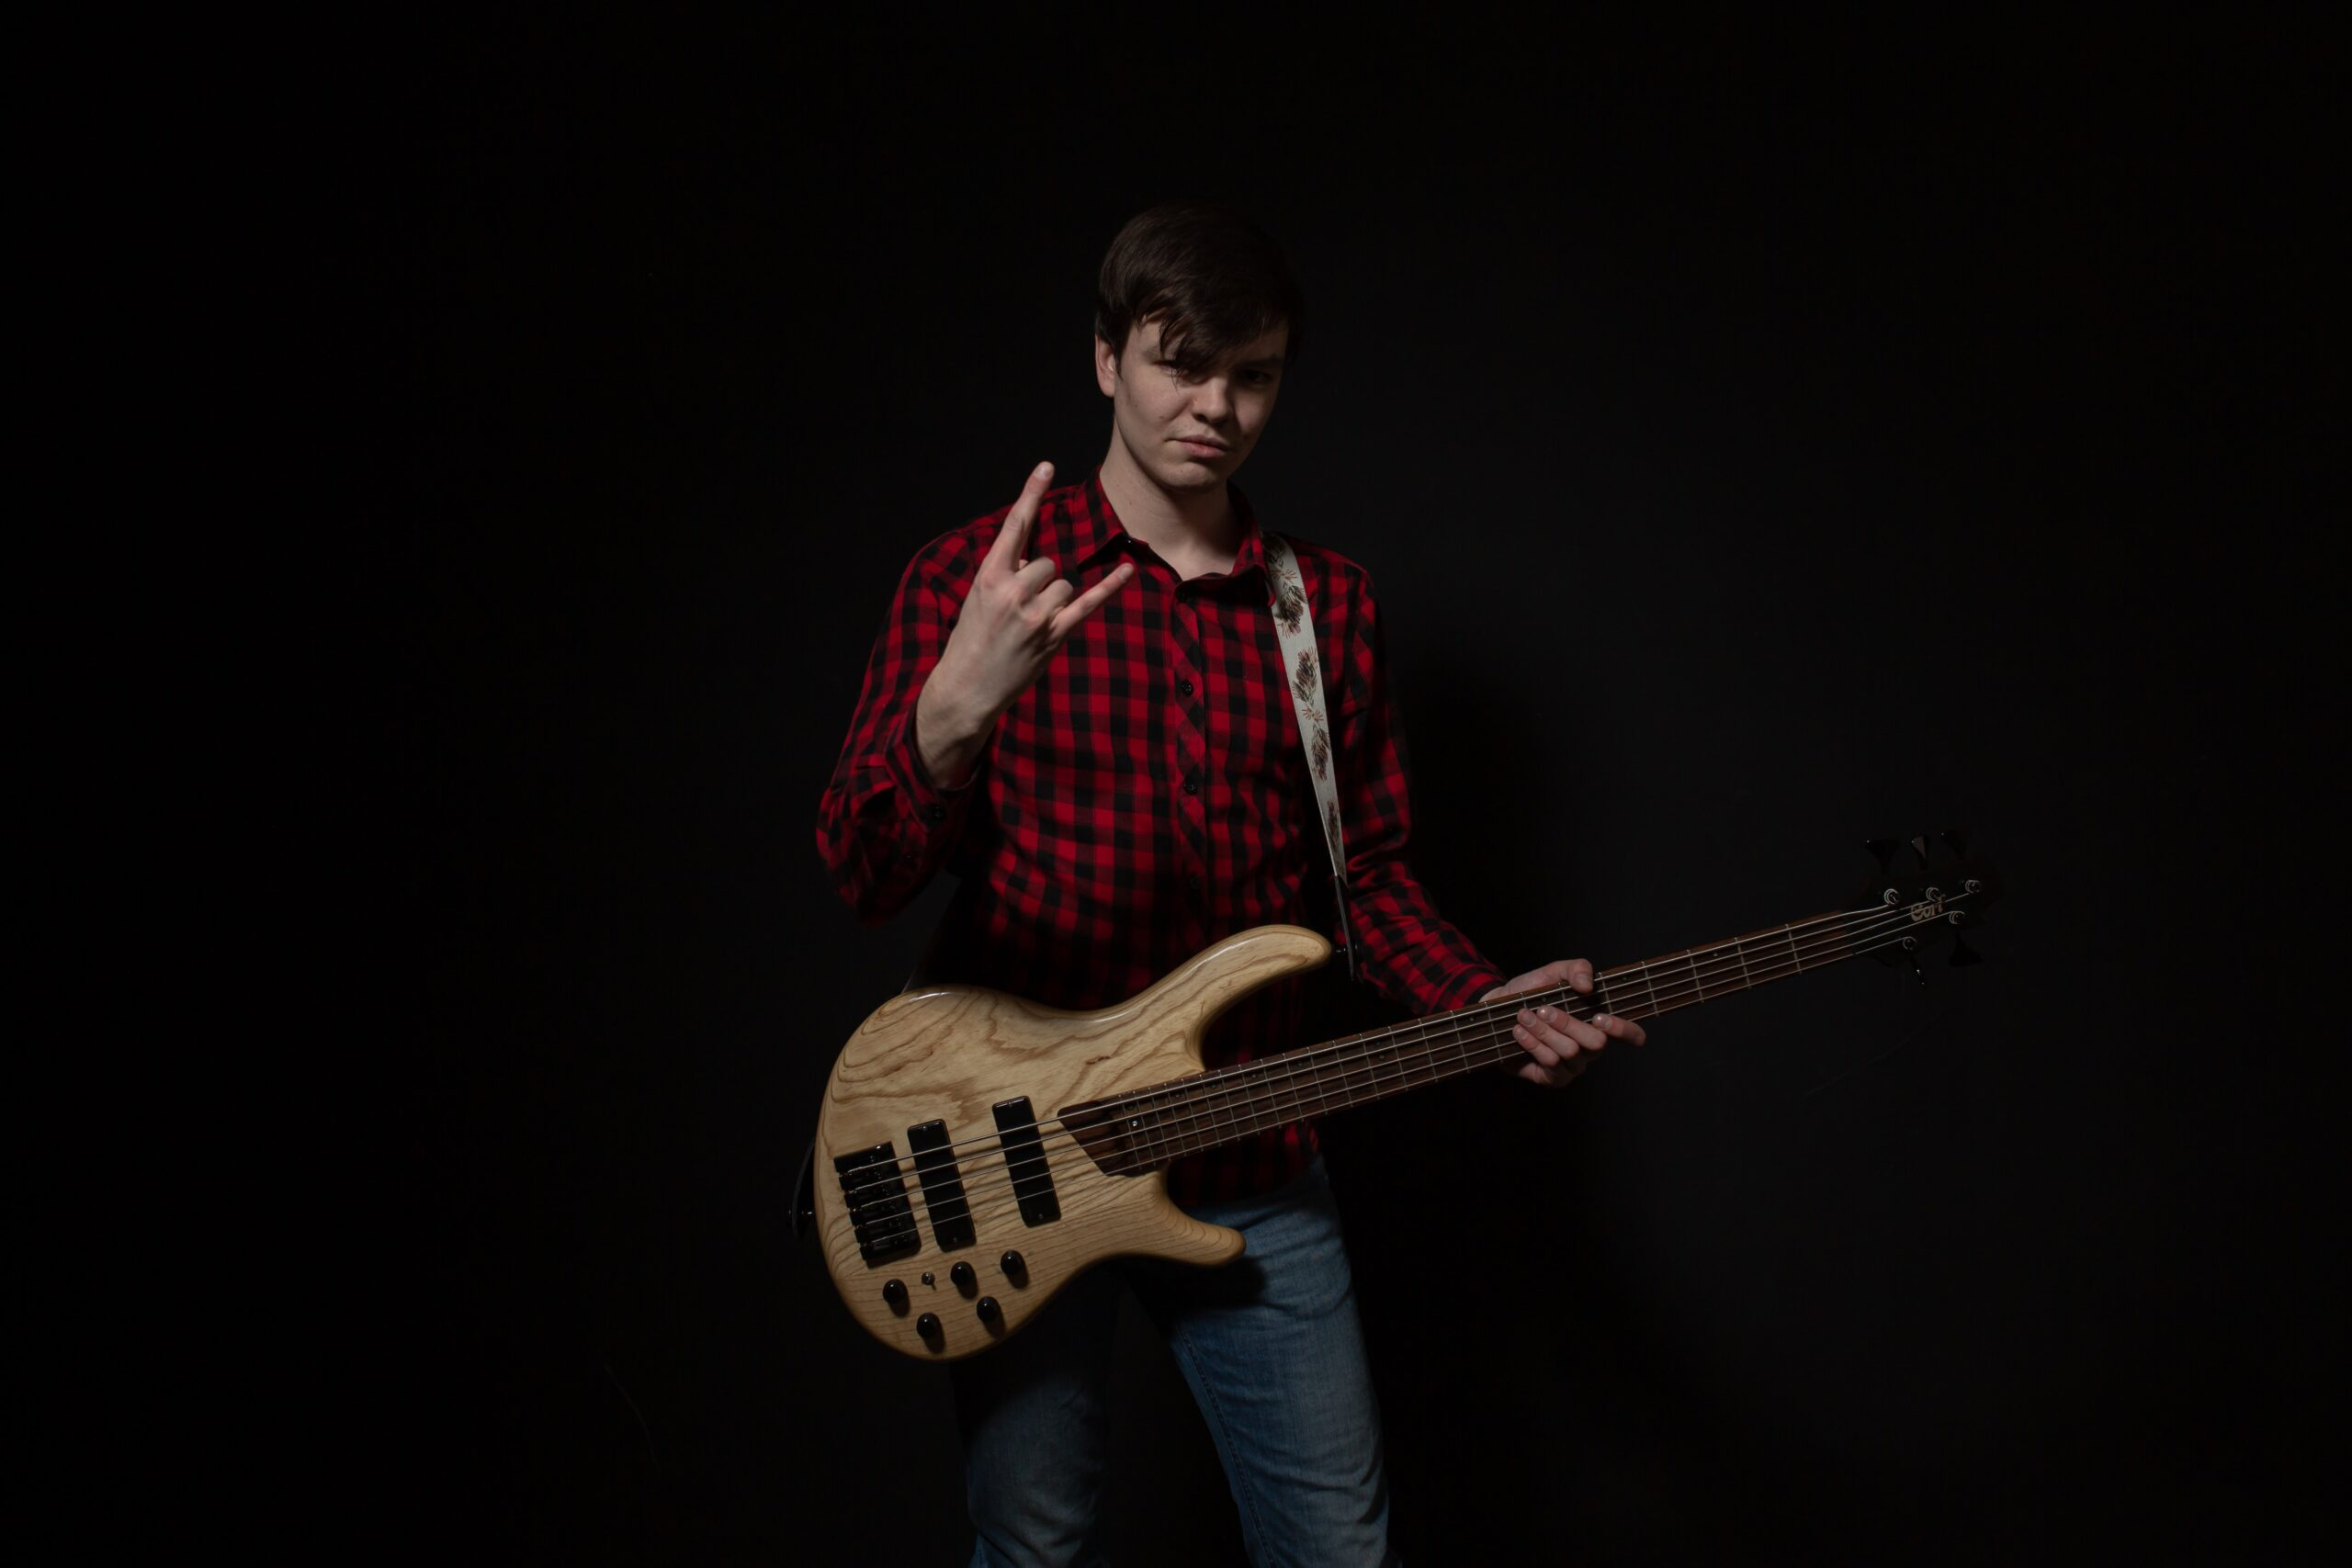 Man Playing Electric Guitar   The Top 9 Techniques For Practicing Bass Guitar